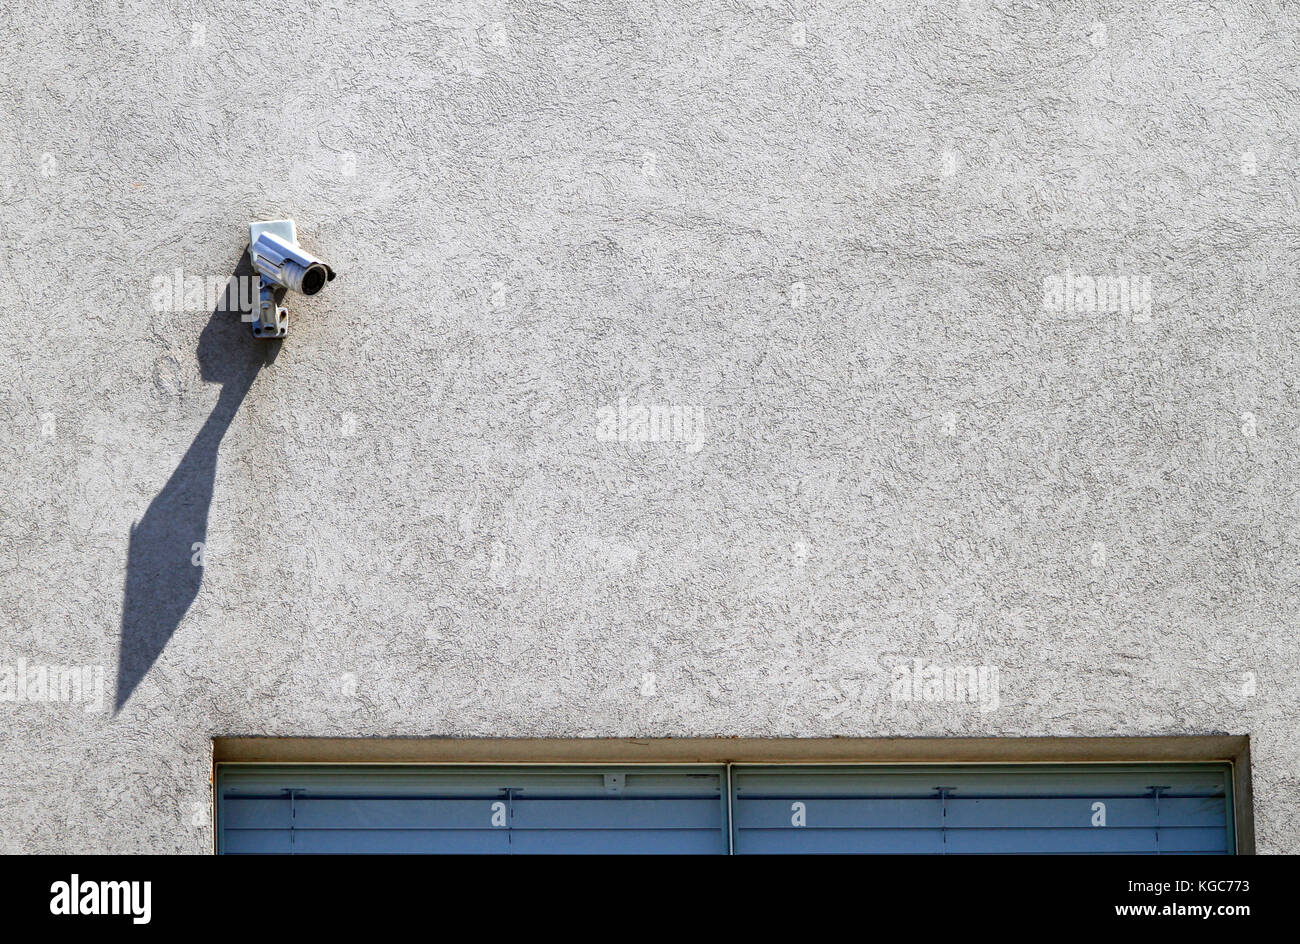 CCTV security camera on building Stock Photo